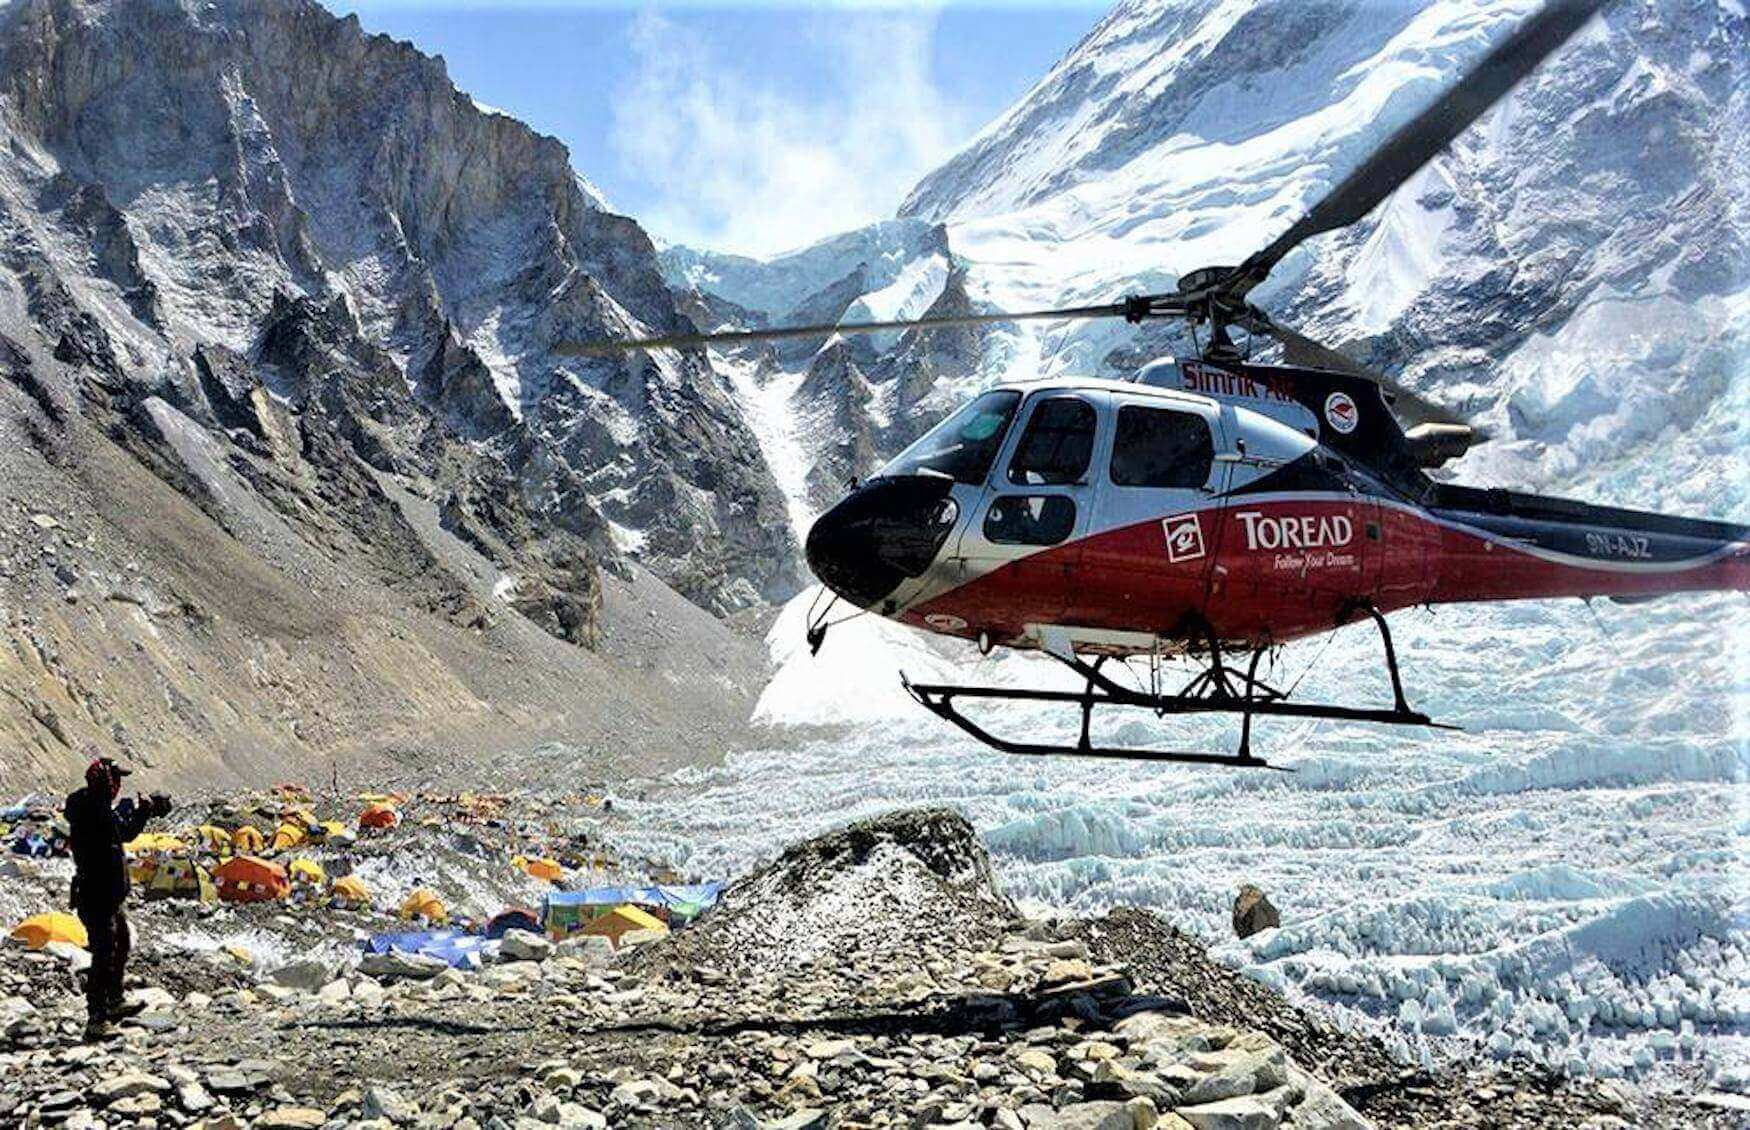 everest base camp and fly back helicopter, everest base camp helicopter tour, EBC Helicopter tour, EBC Heli tour